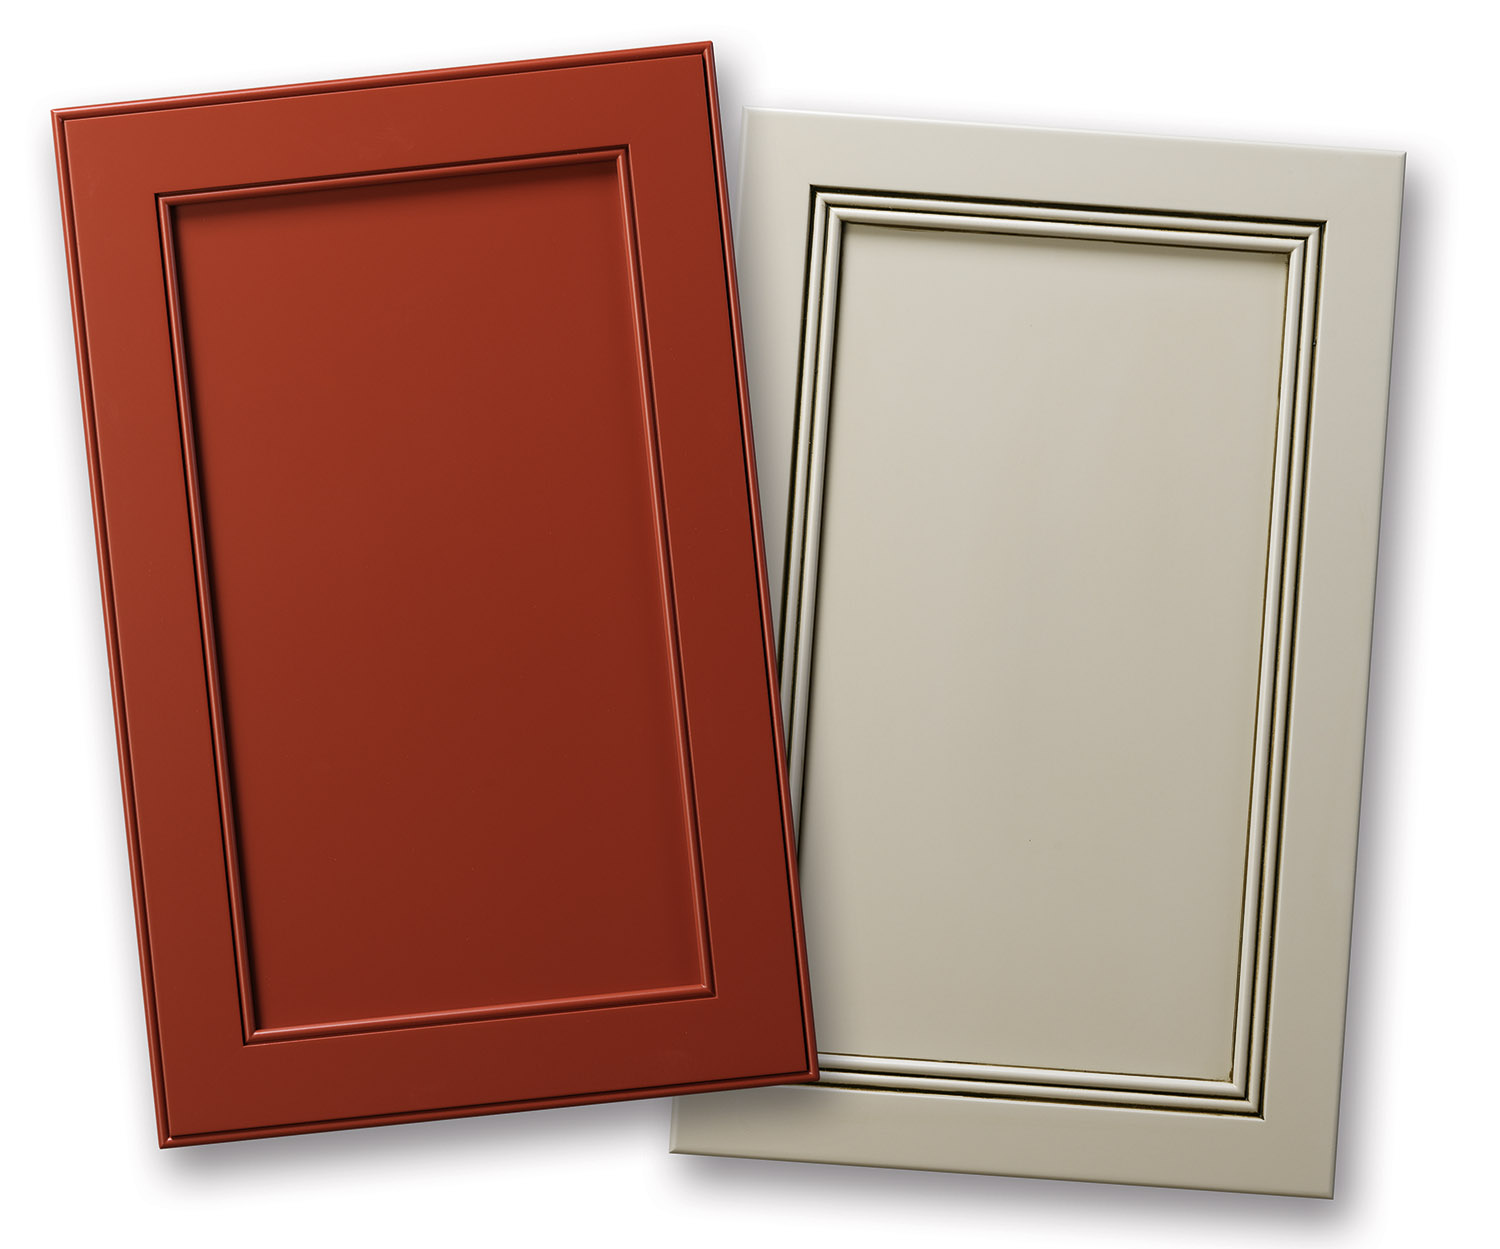 CONESTOGA WOOD OFFERS MORE AND MORE DESIGN OPTIONS FOR LOVERS OF THE POPULAR PAINTED FINISH